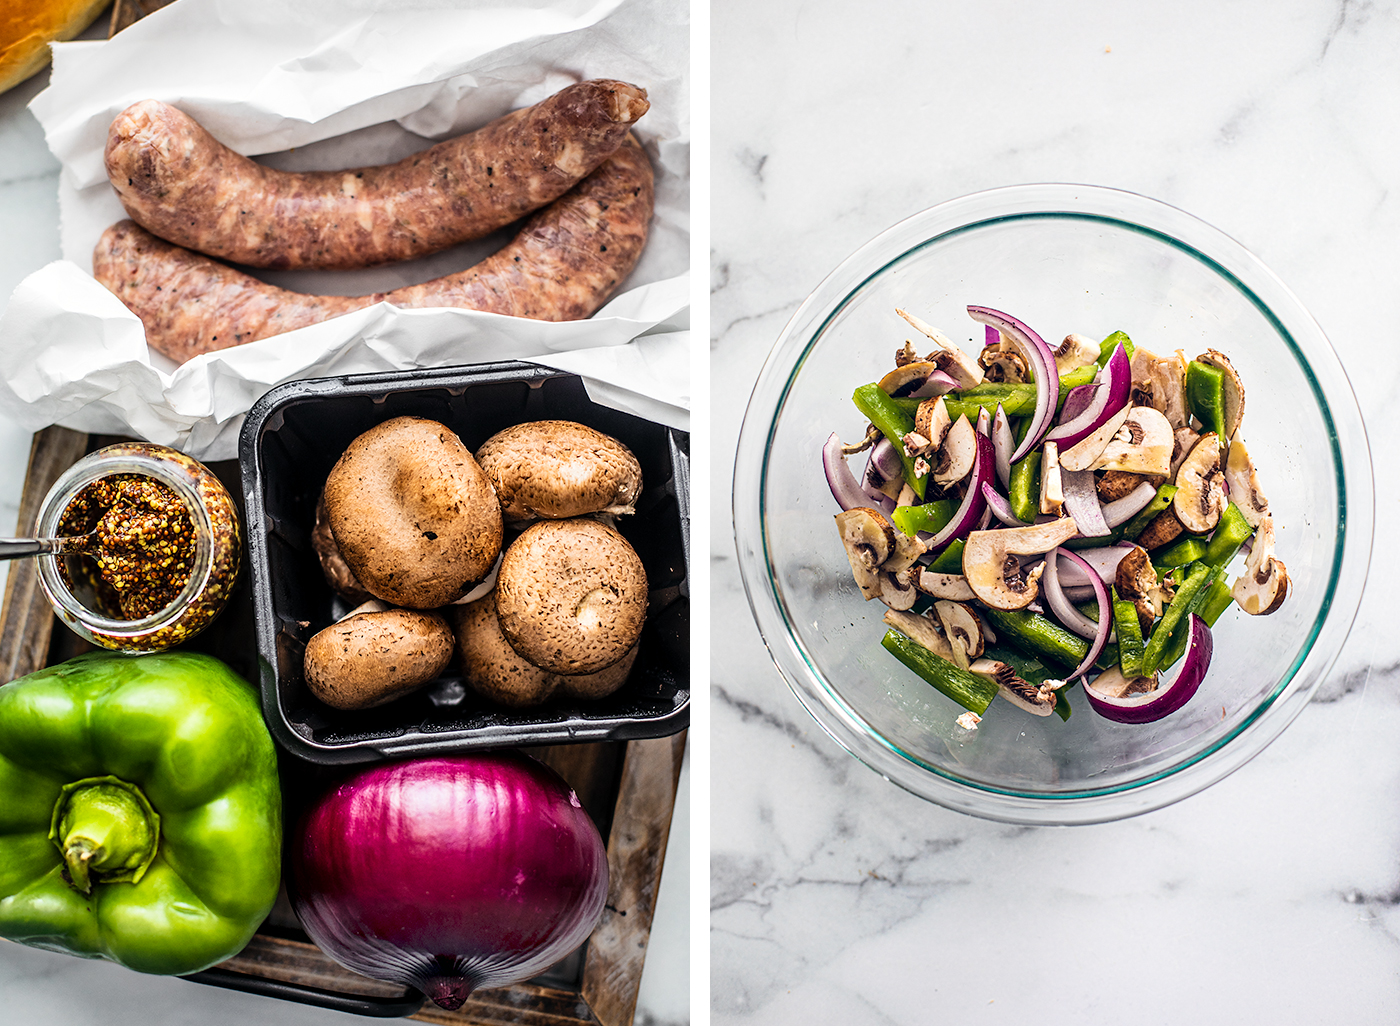 Green bell pepper, red onion, mushrooms and sausages on a serving tray, and a bowl of prepared chopped veggies.